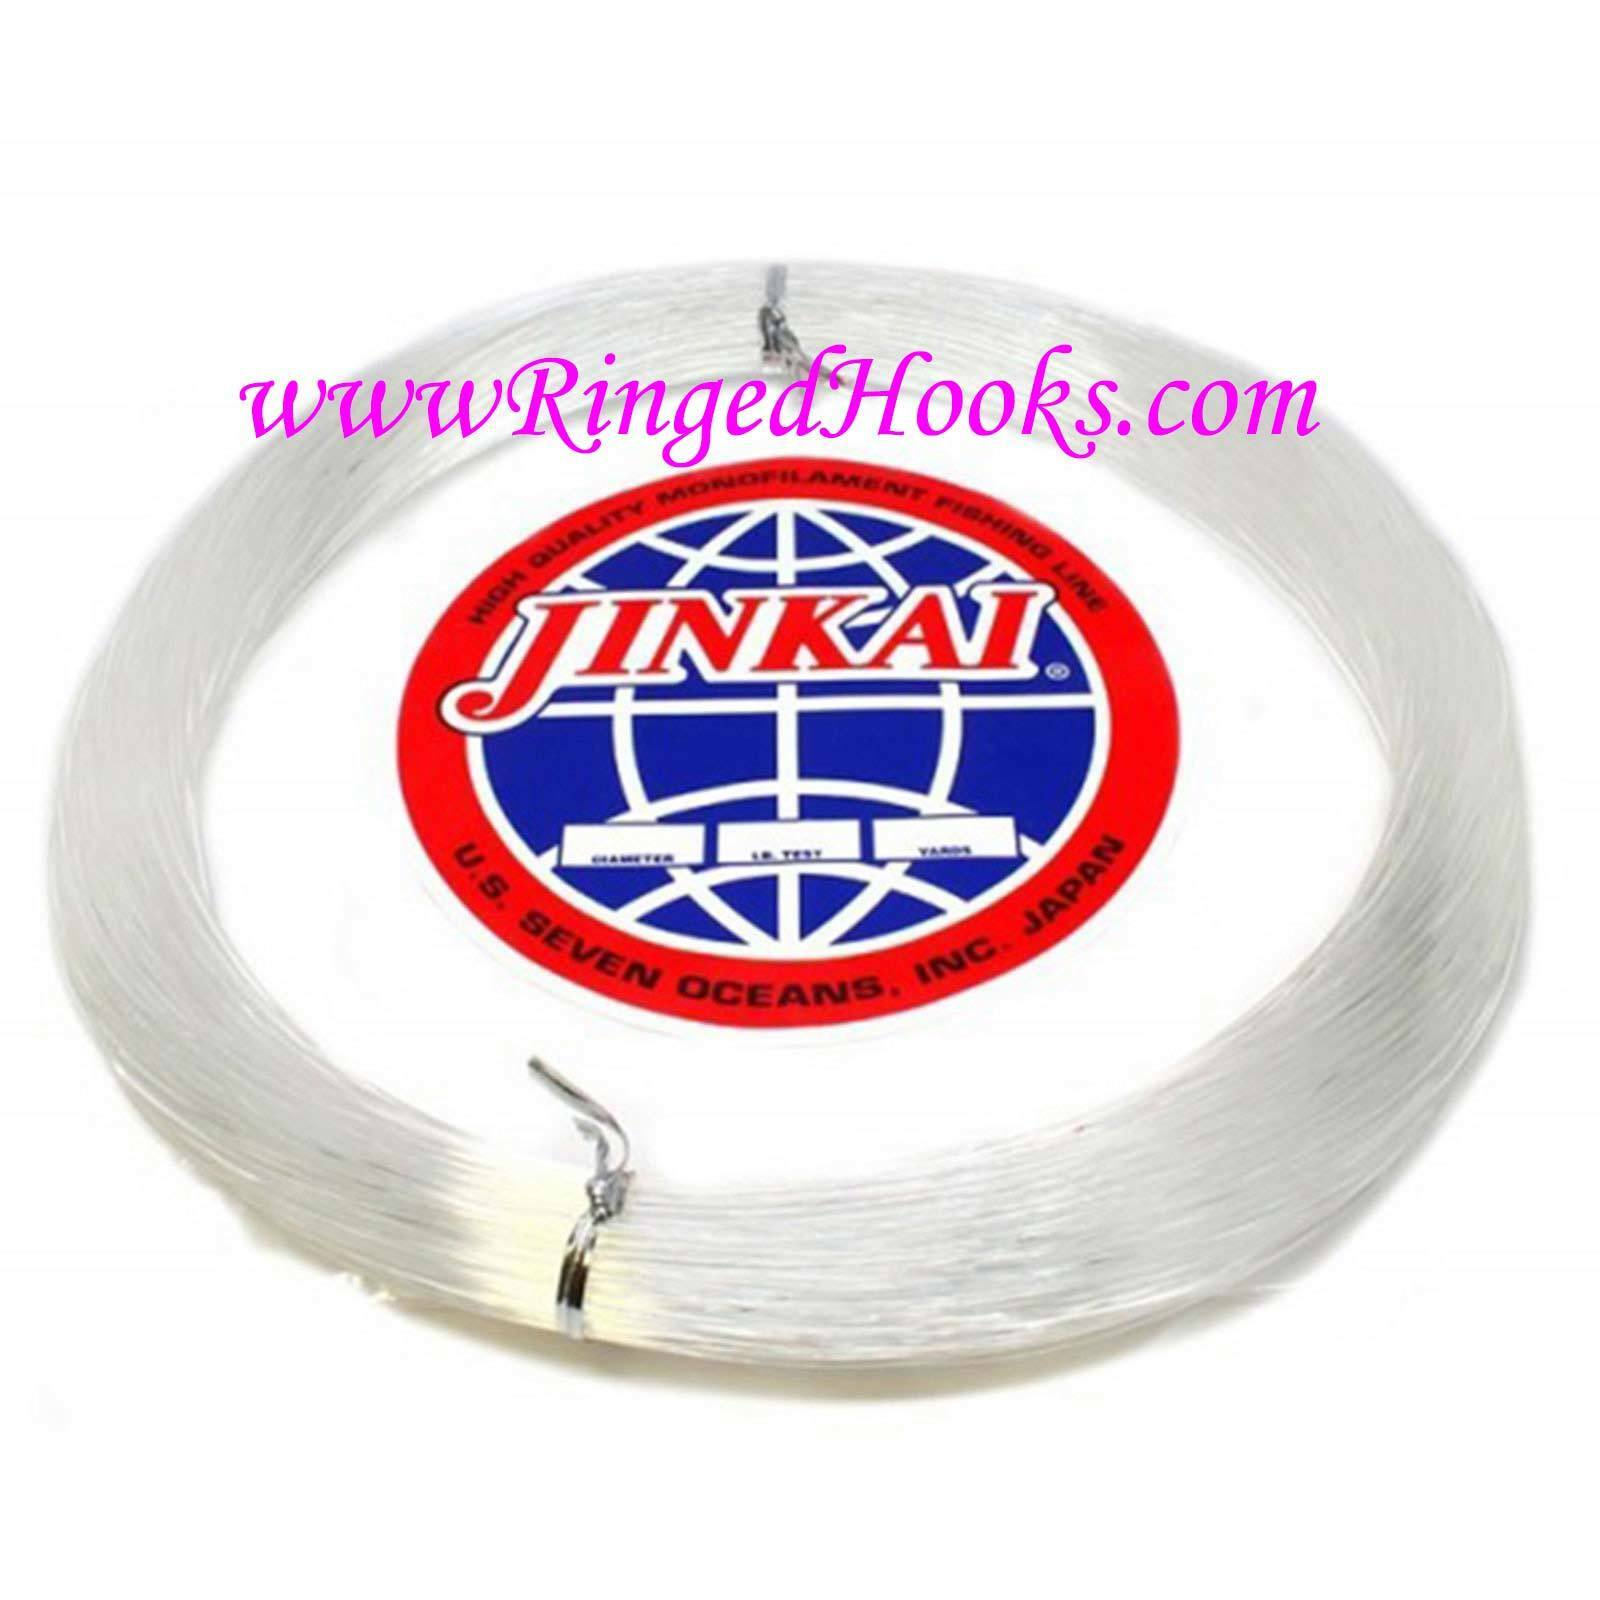 Jinkai Monofiliment leader - CLEAR - 100 yd. Coil - 400 lb. Test - 1.81 mm Dia.